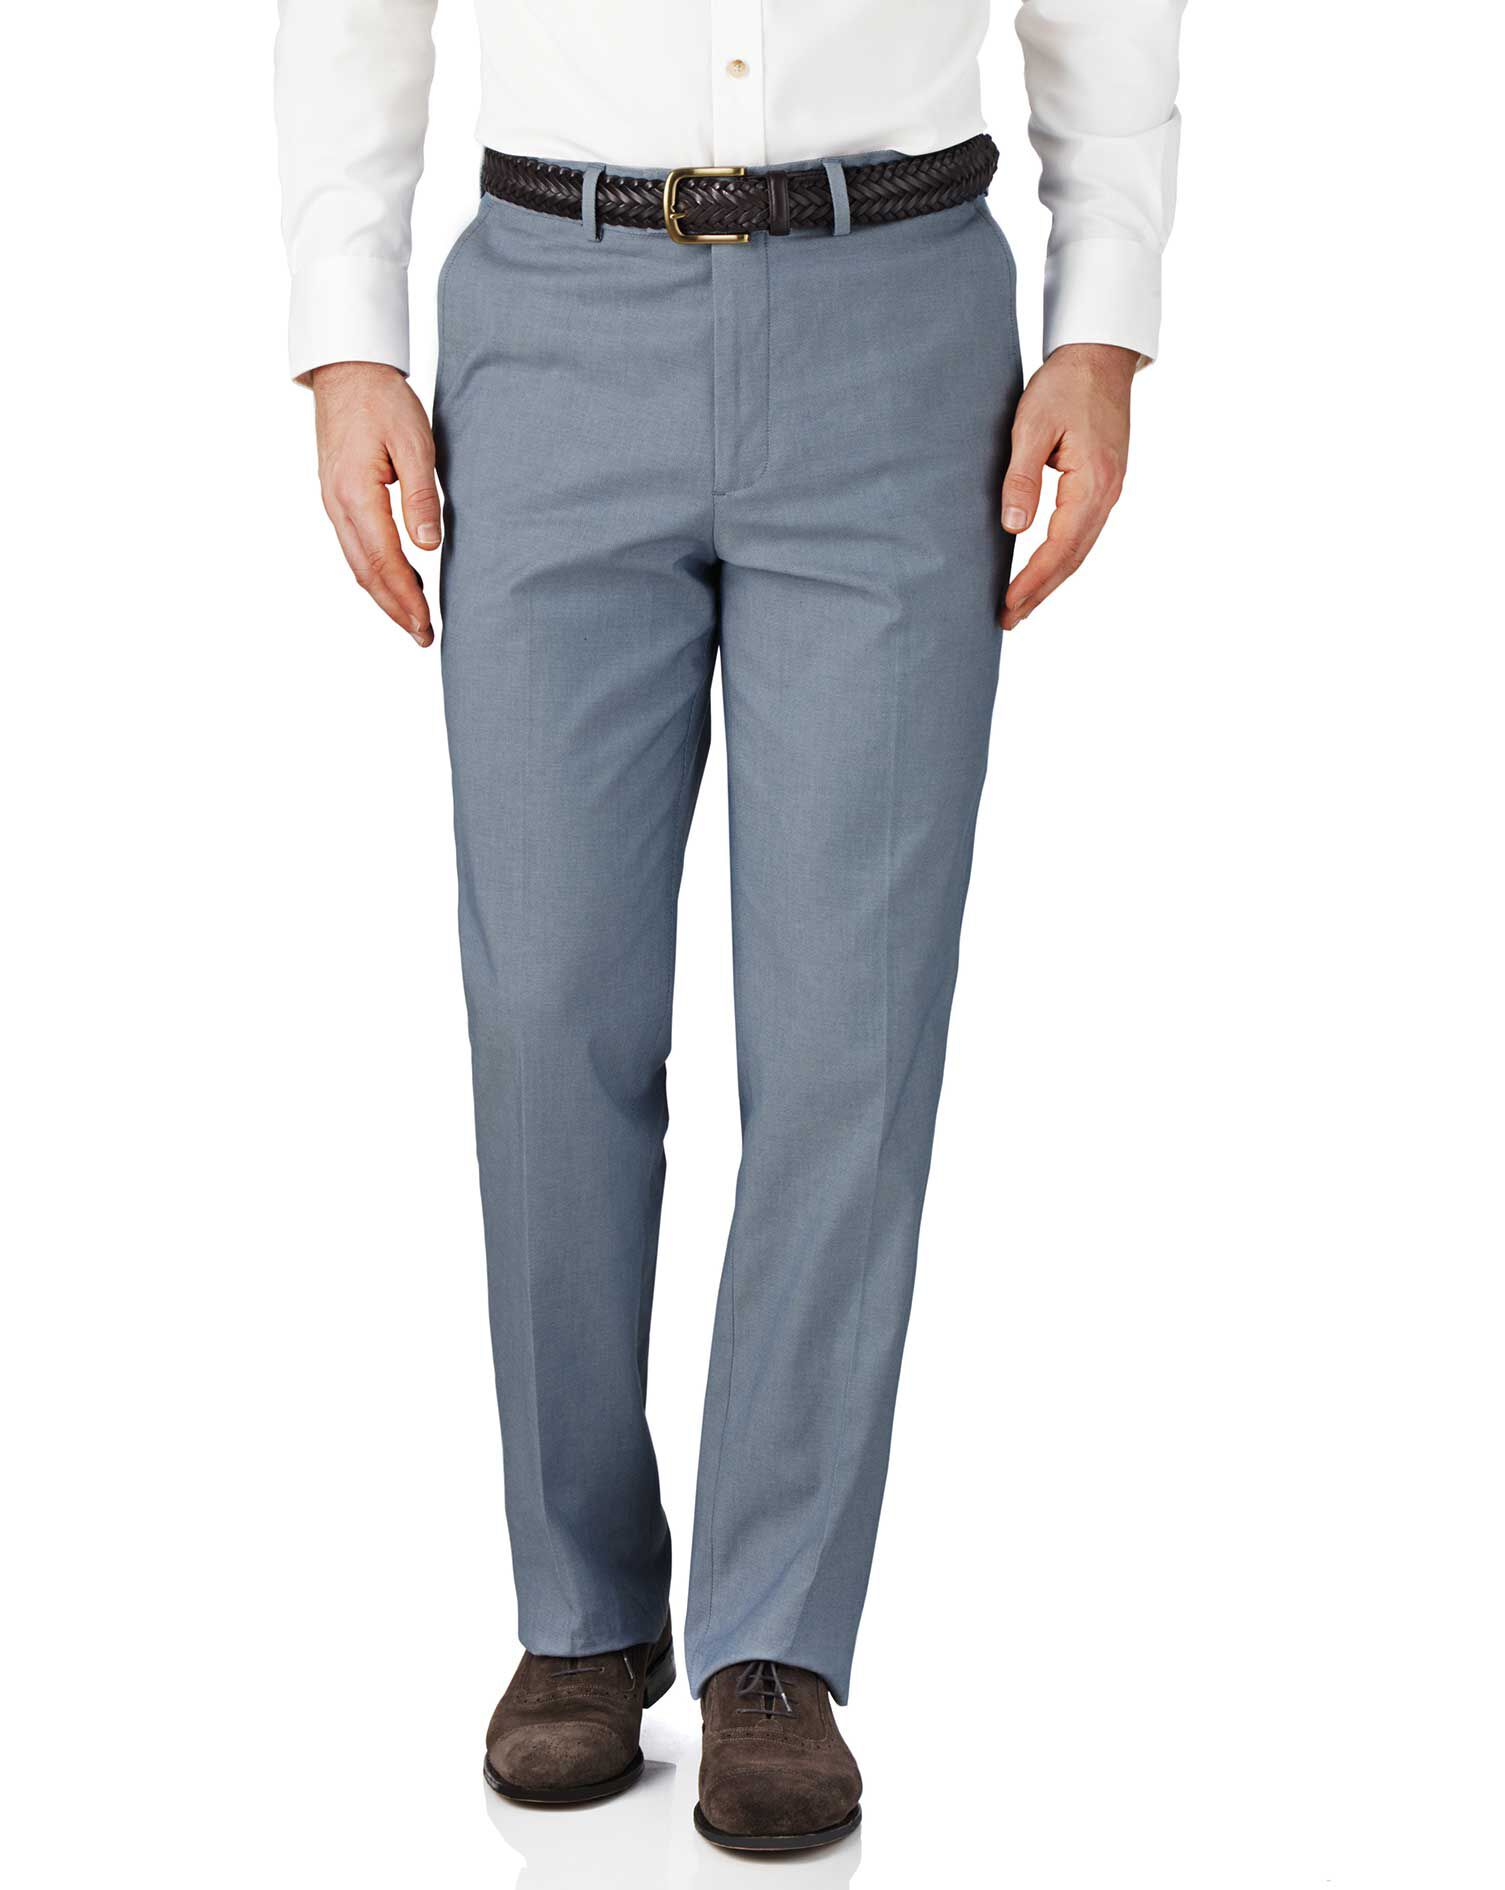 Blue Chambray Classic Fit Stretch Cavalry Twill Trousers Size W32 L30 by Charles Tyrwhitt